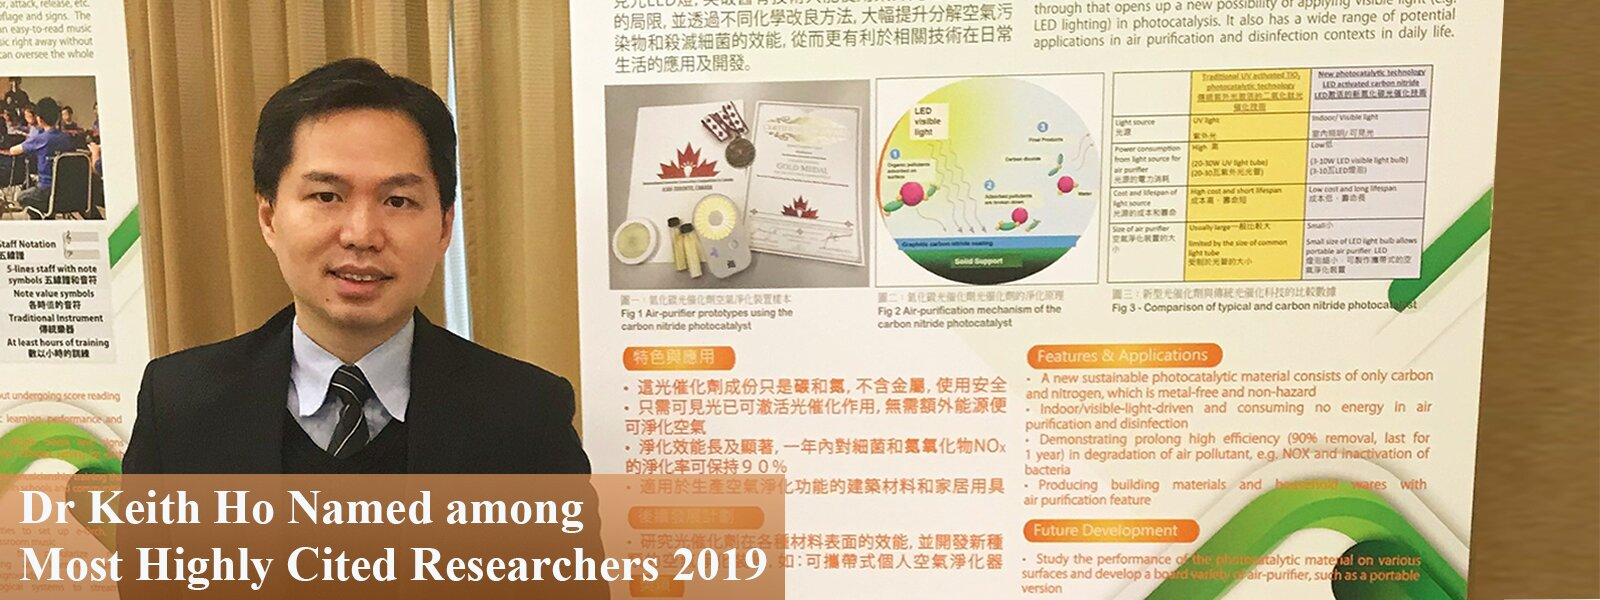 Dr Keith Ho Named among Most Highly Cited Researchers 2019